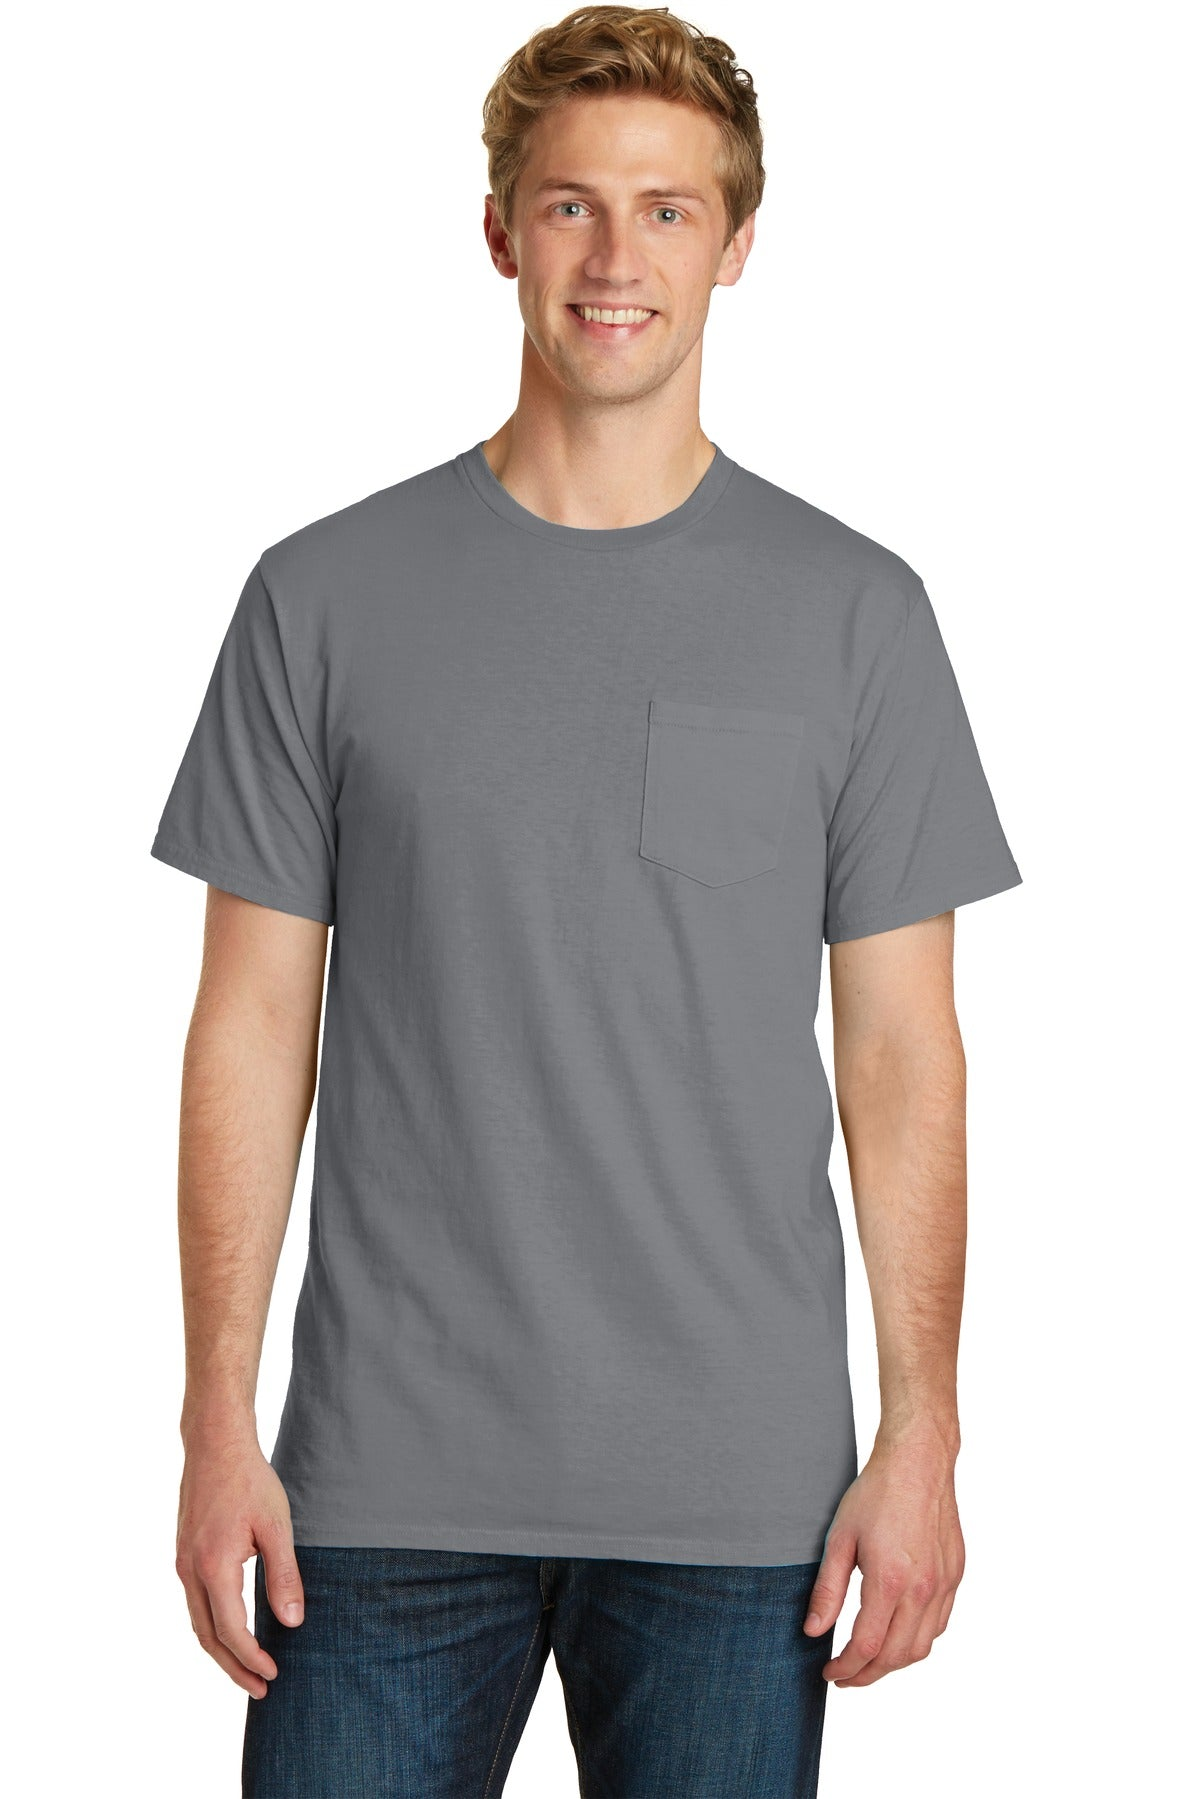 Port & Company PC099P Beach Wash Garment-Dyed Pocket Tee - Pewter - HIT A Double